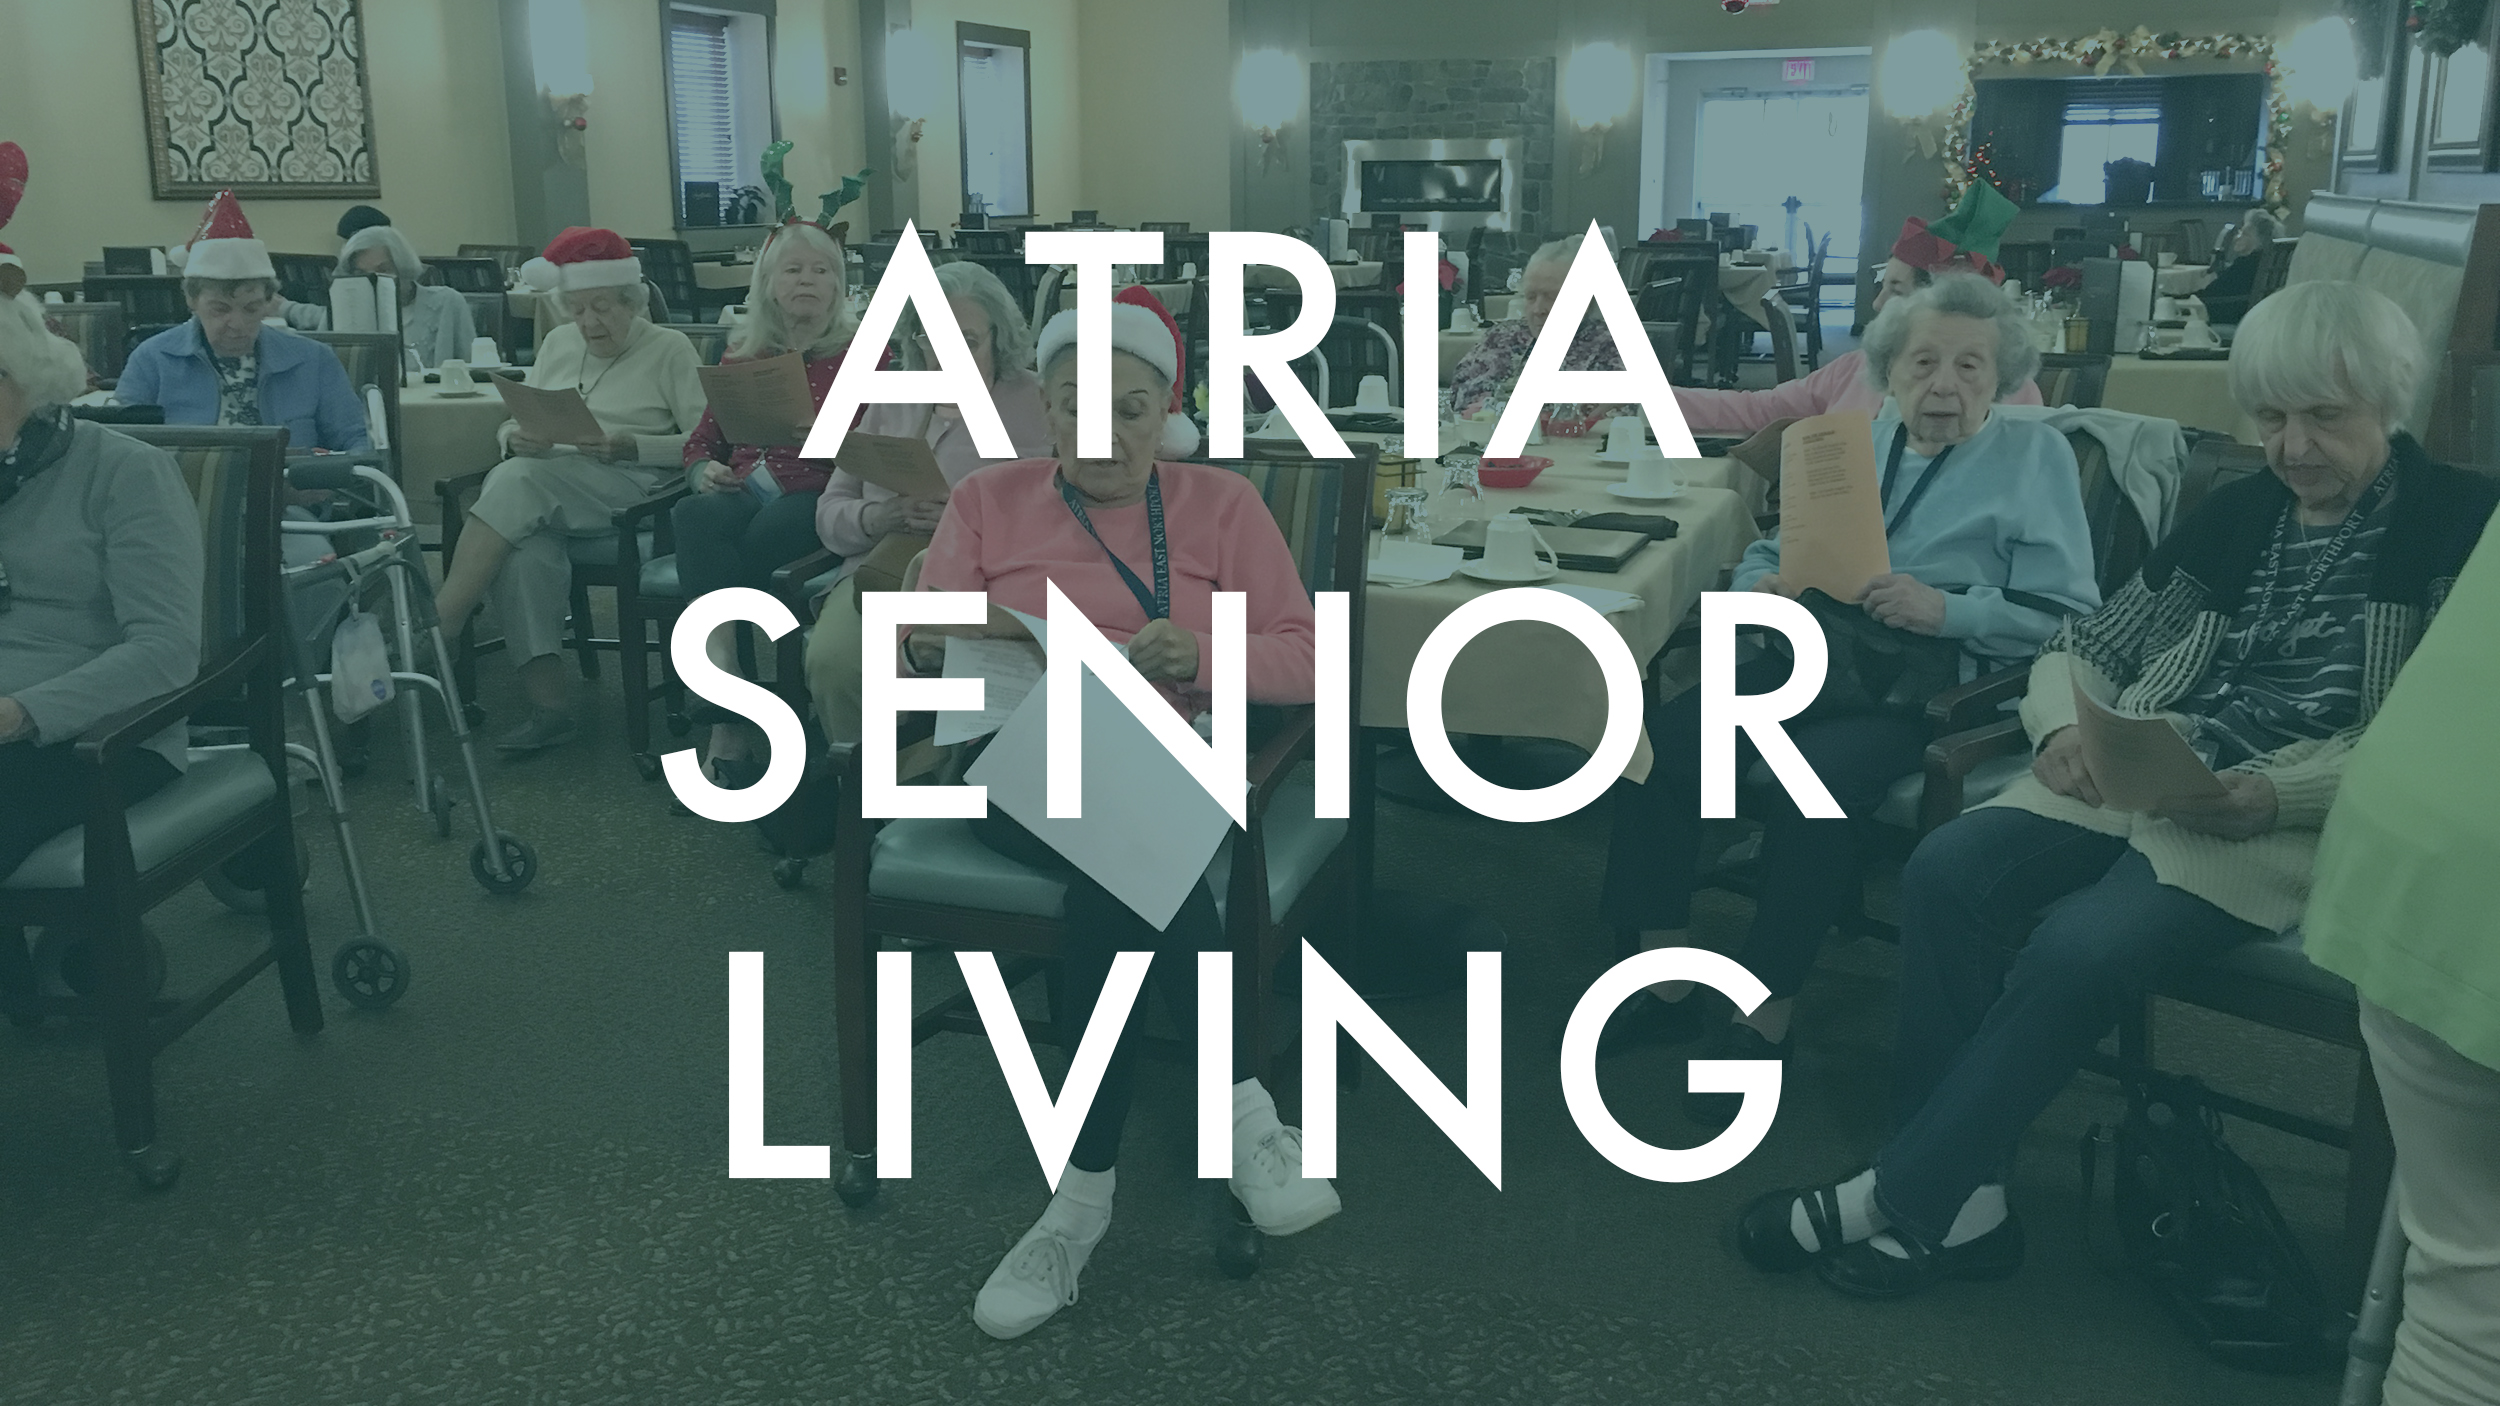 Atria Assisted Living.jpg